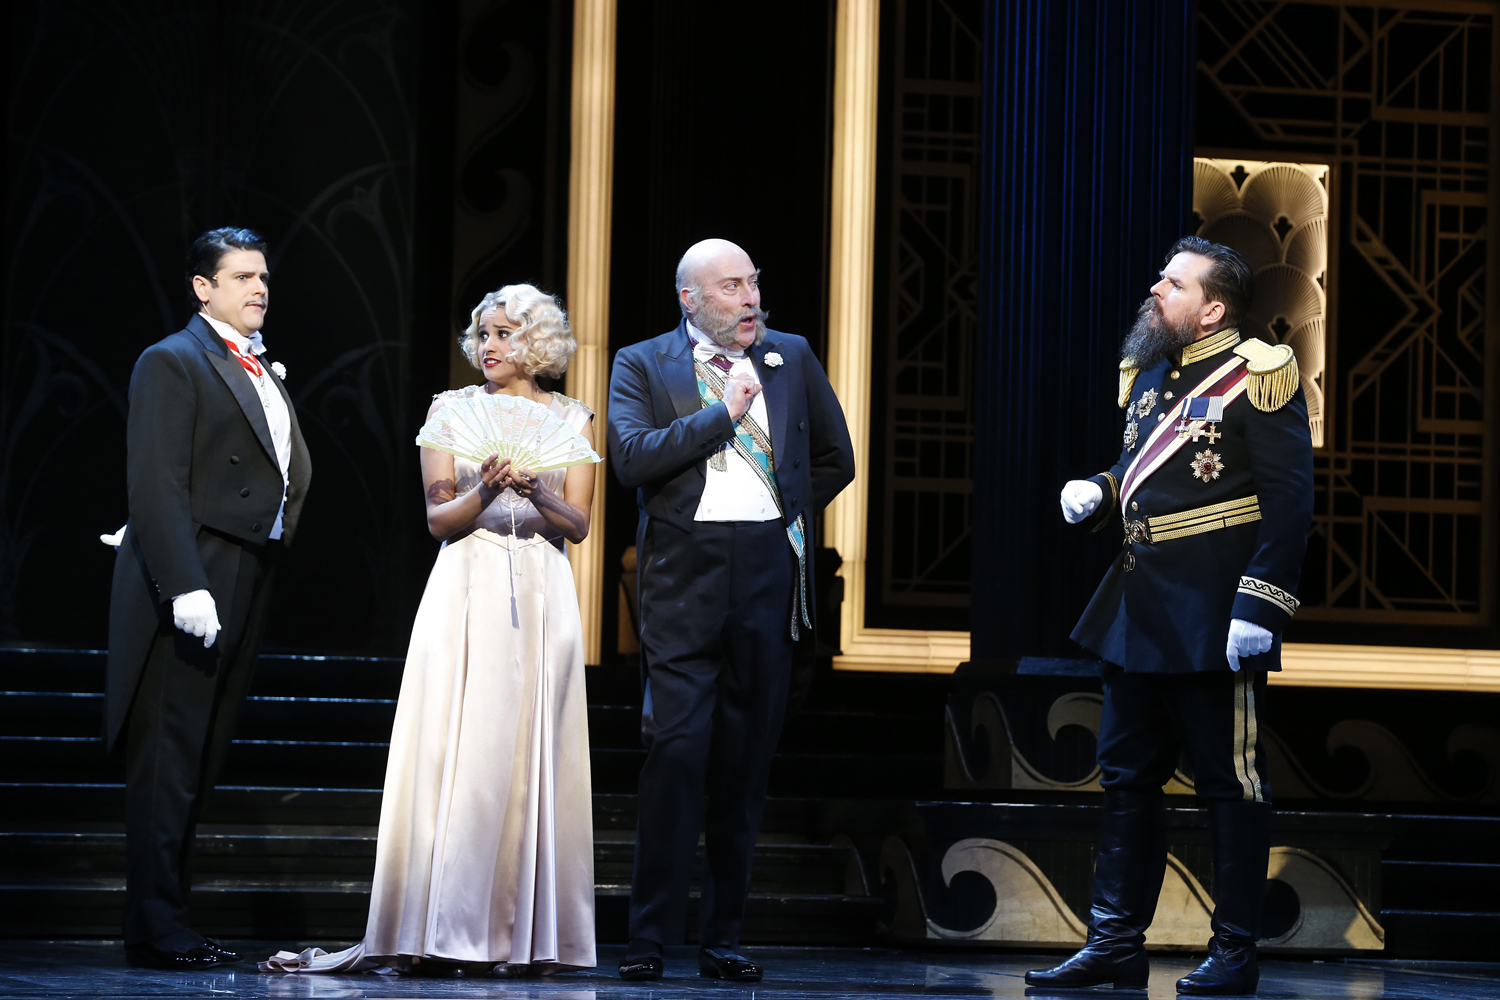 John Longmuir as Camille de Rosillon, Stacey Alleaume as Valencienne, David Whitney as Baron Mirko Zeta and Richard Anderson as Alexis Kromov in The Merry Widow; Melbourne, 2017. Photo credit: Jeff Busby